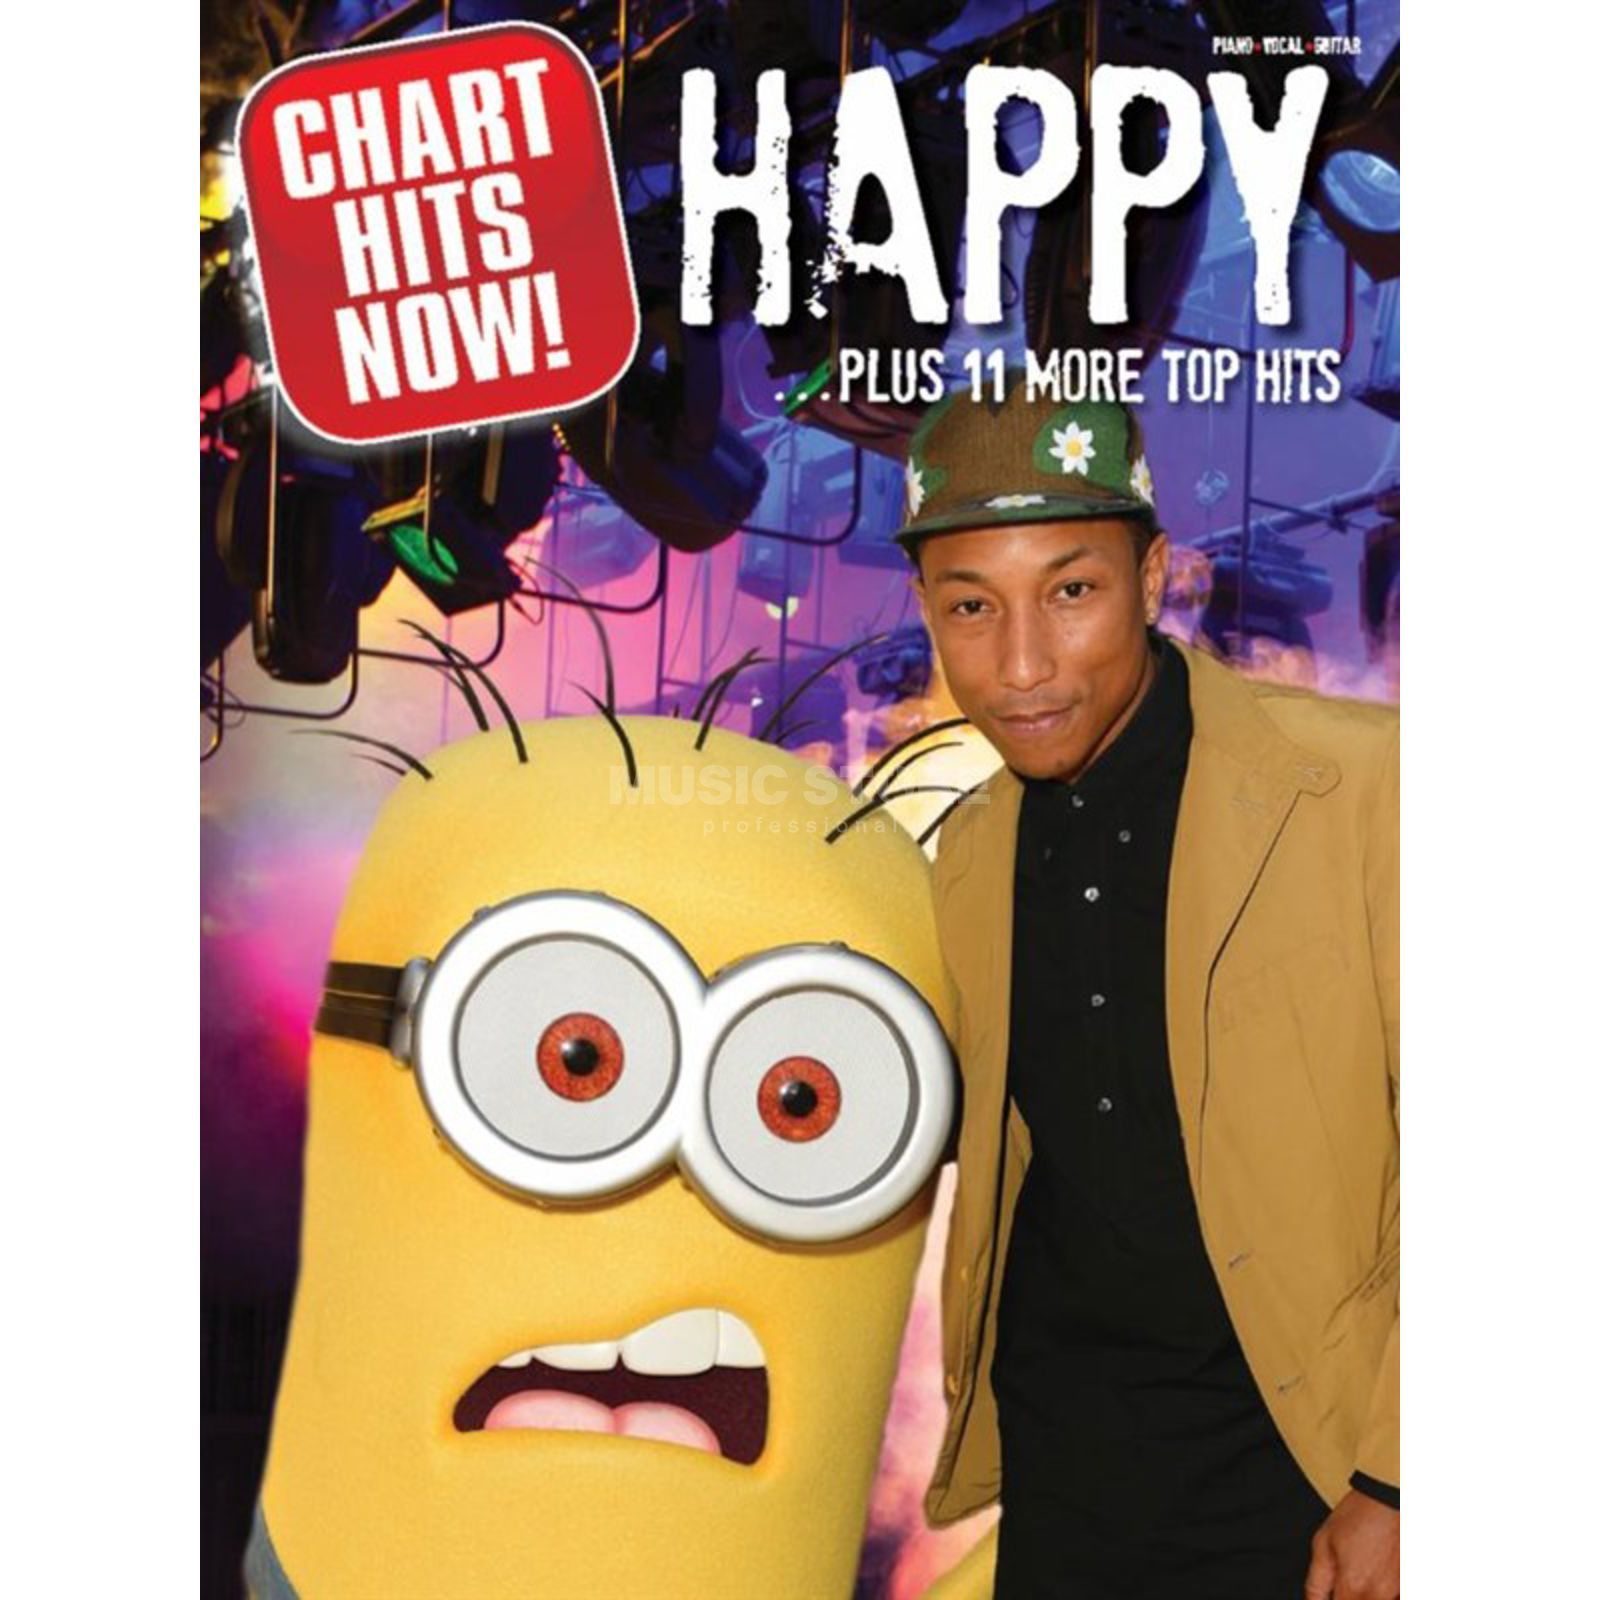 Music Sales Chart Hits Now! 'Happy' Plus 11 More Top Hits Produktbild